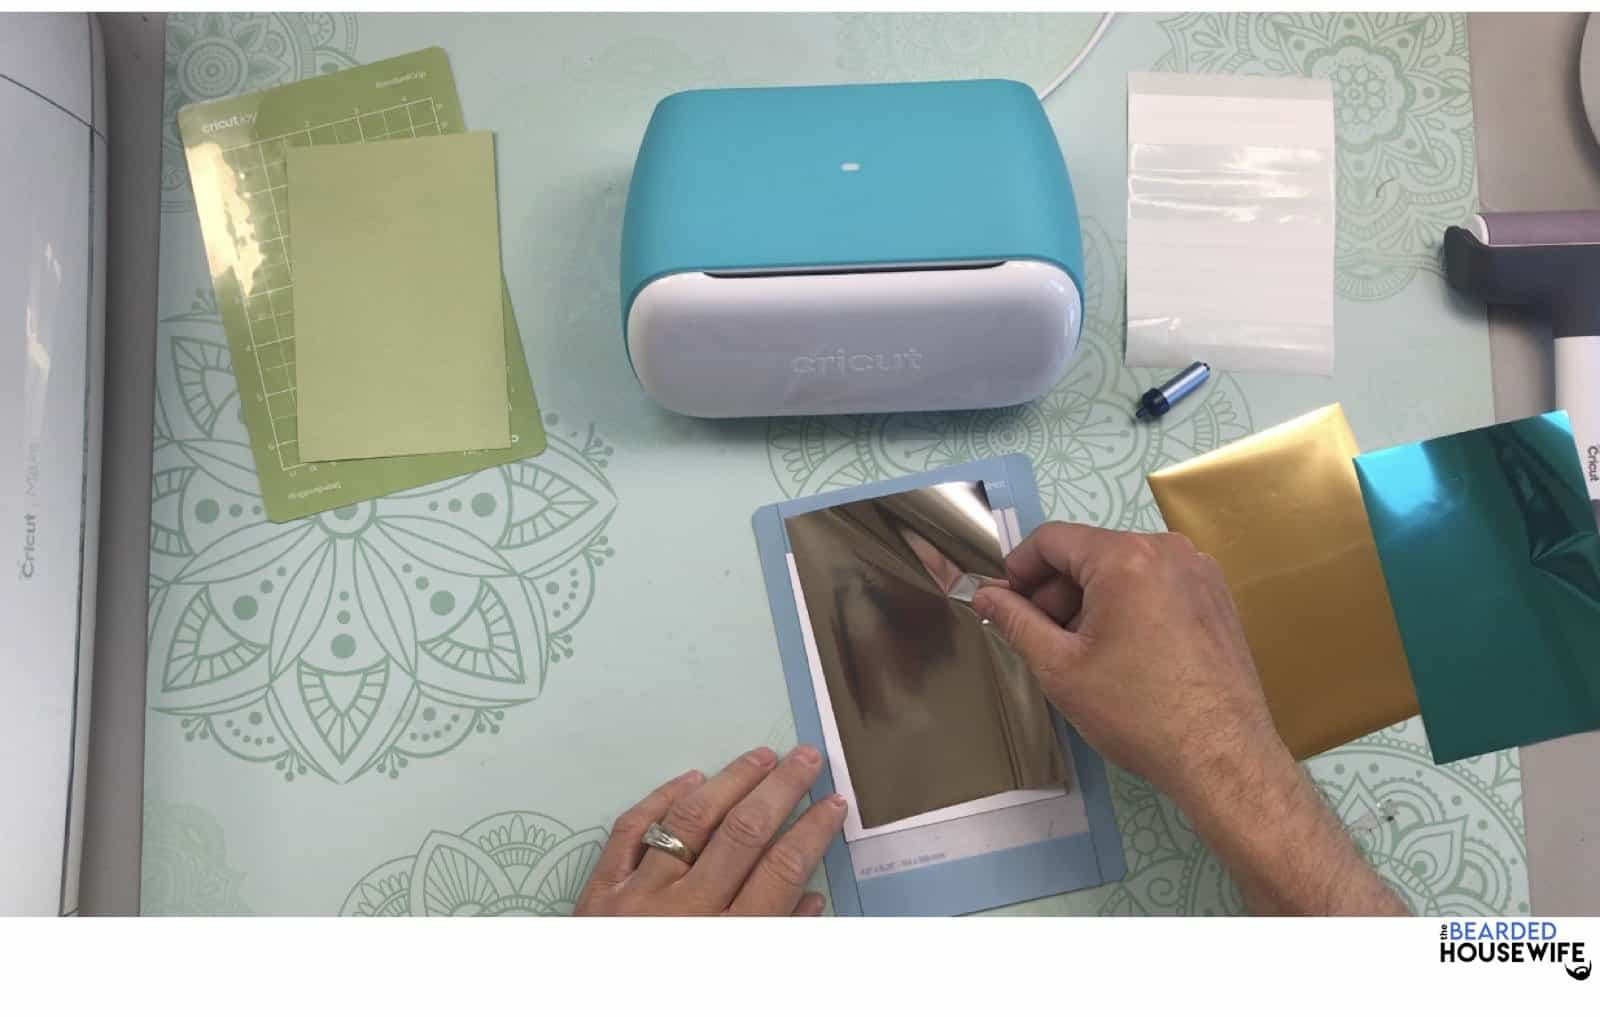 place the first foil layer on top of the card per design space